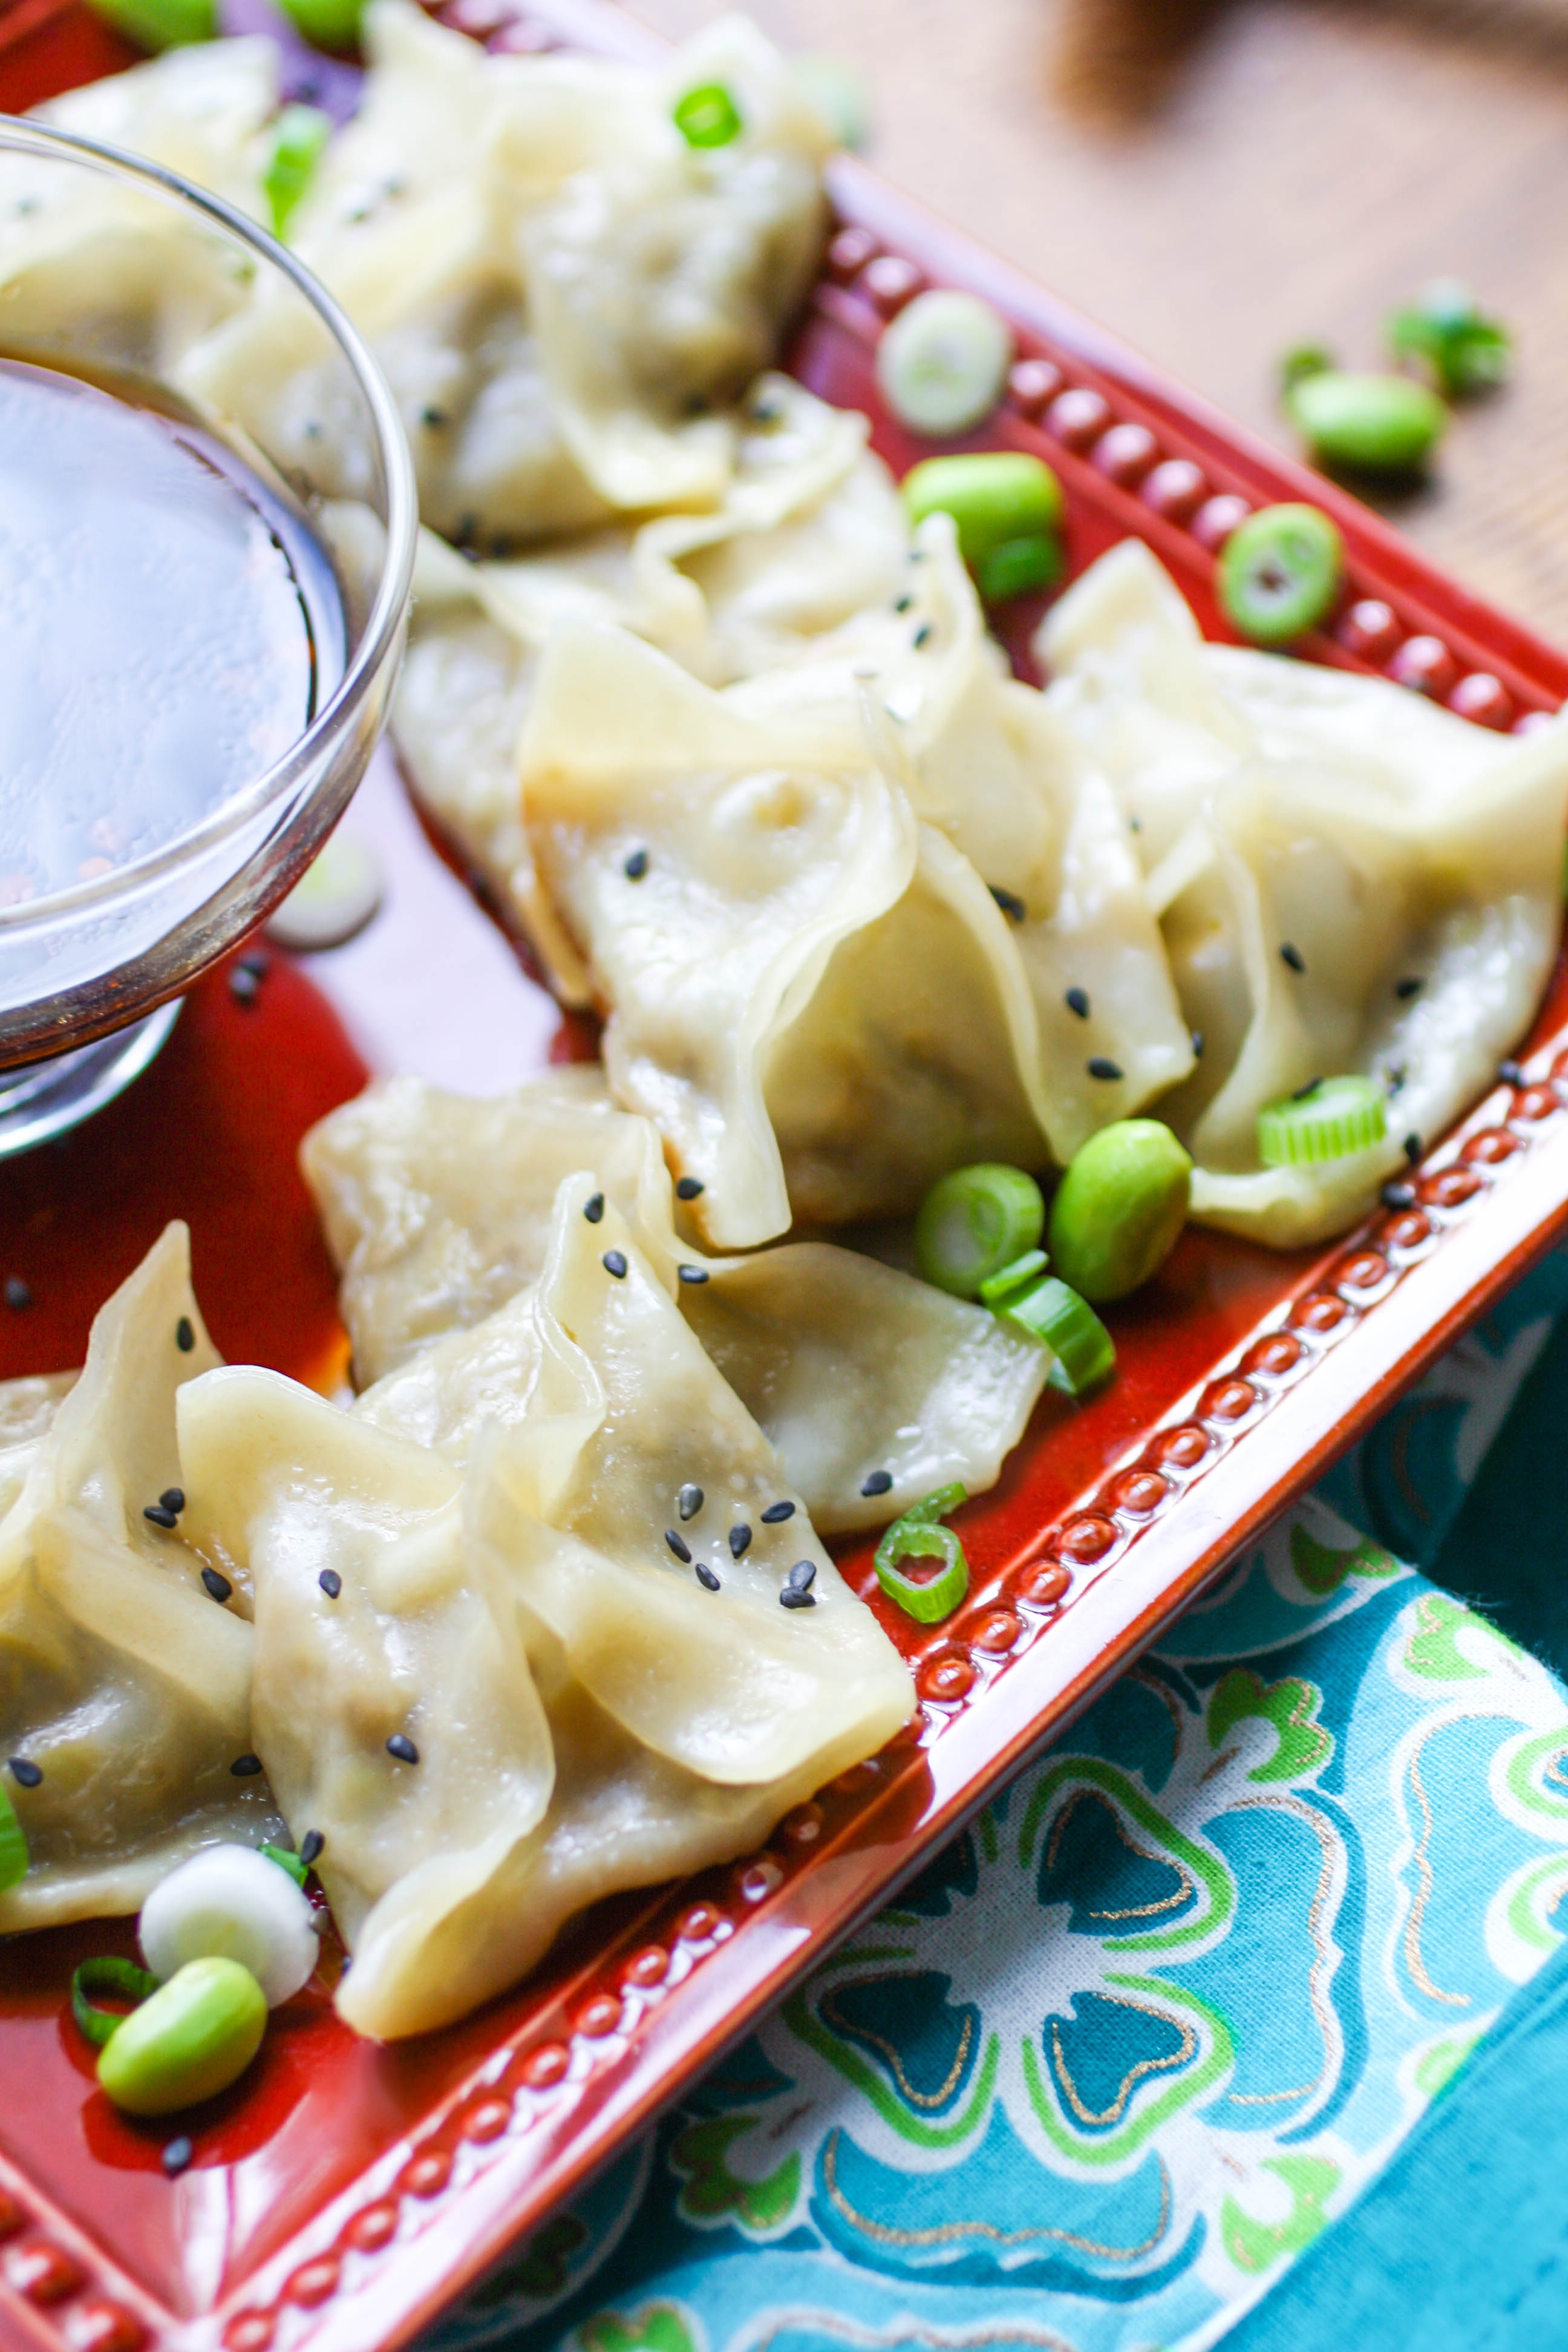 Edamame and Mushroom Potstickers with Dipping Sauce are fun to snack on, and tasty, too! Edamame and mushroom potstickers make a great appetizer or snack -- you'll love the dipping sauce, too.